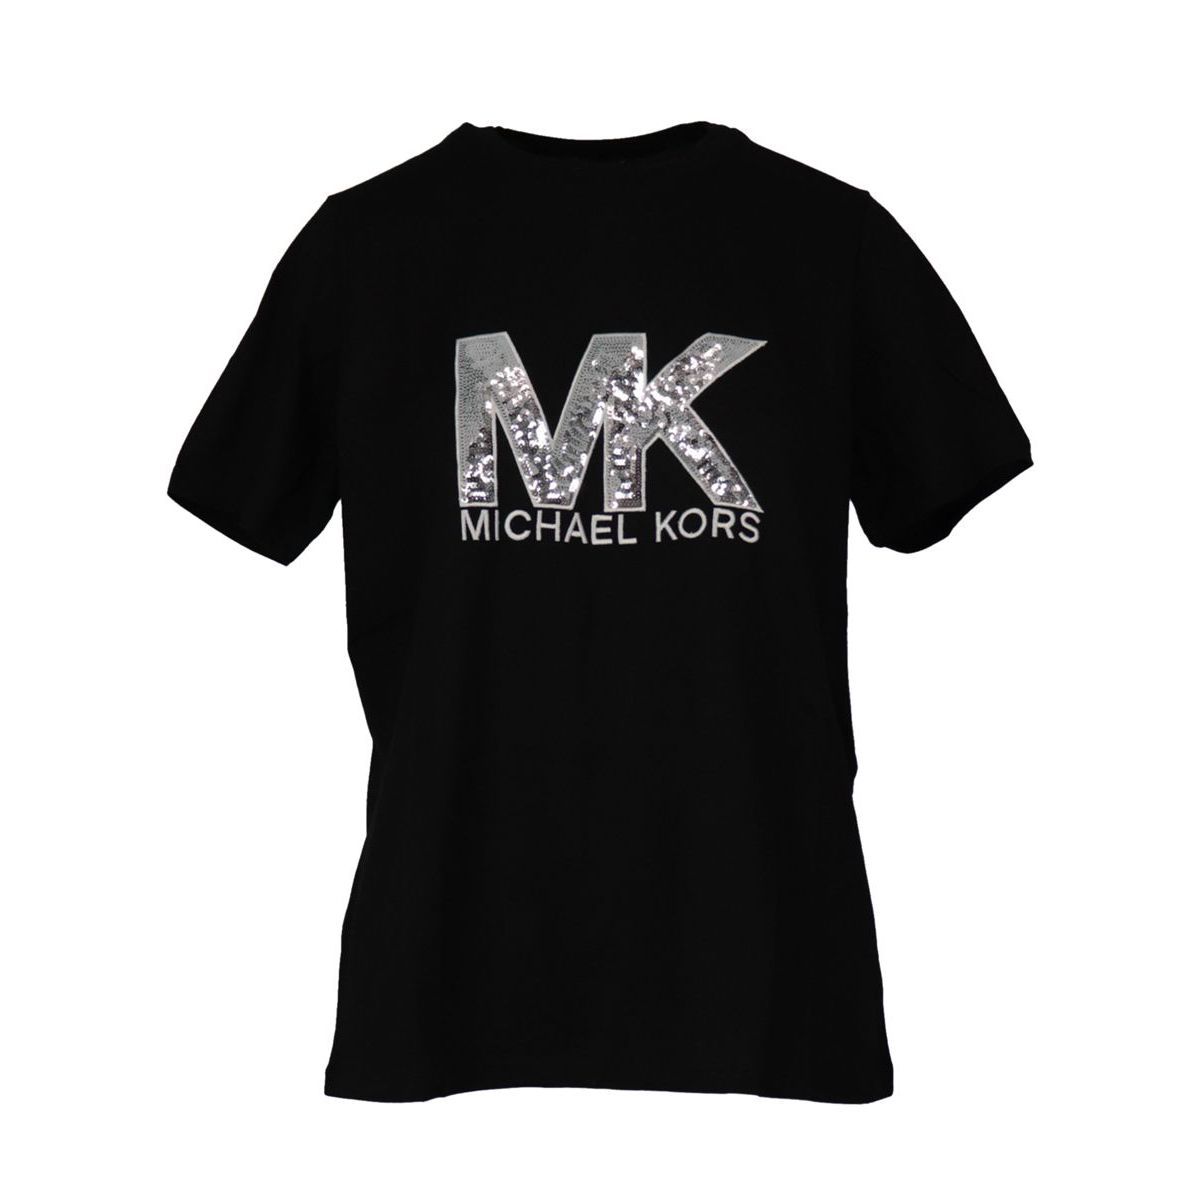 Crew neck t-shirt in cotton jersey with logo and sequins Black Michael Kors